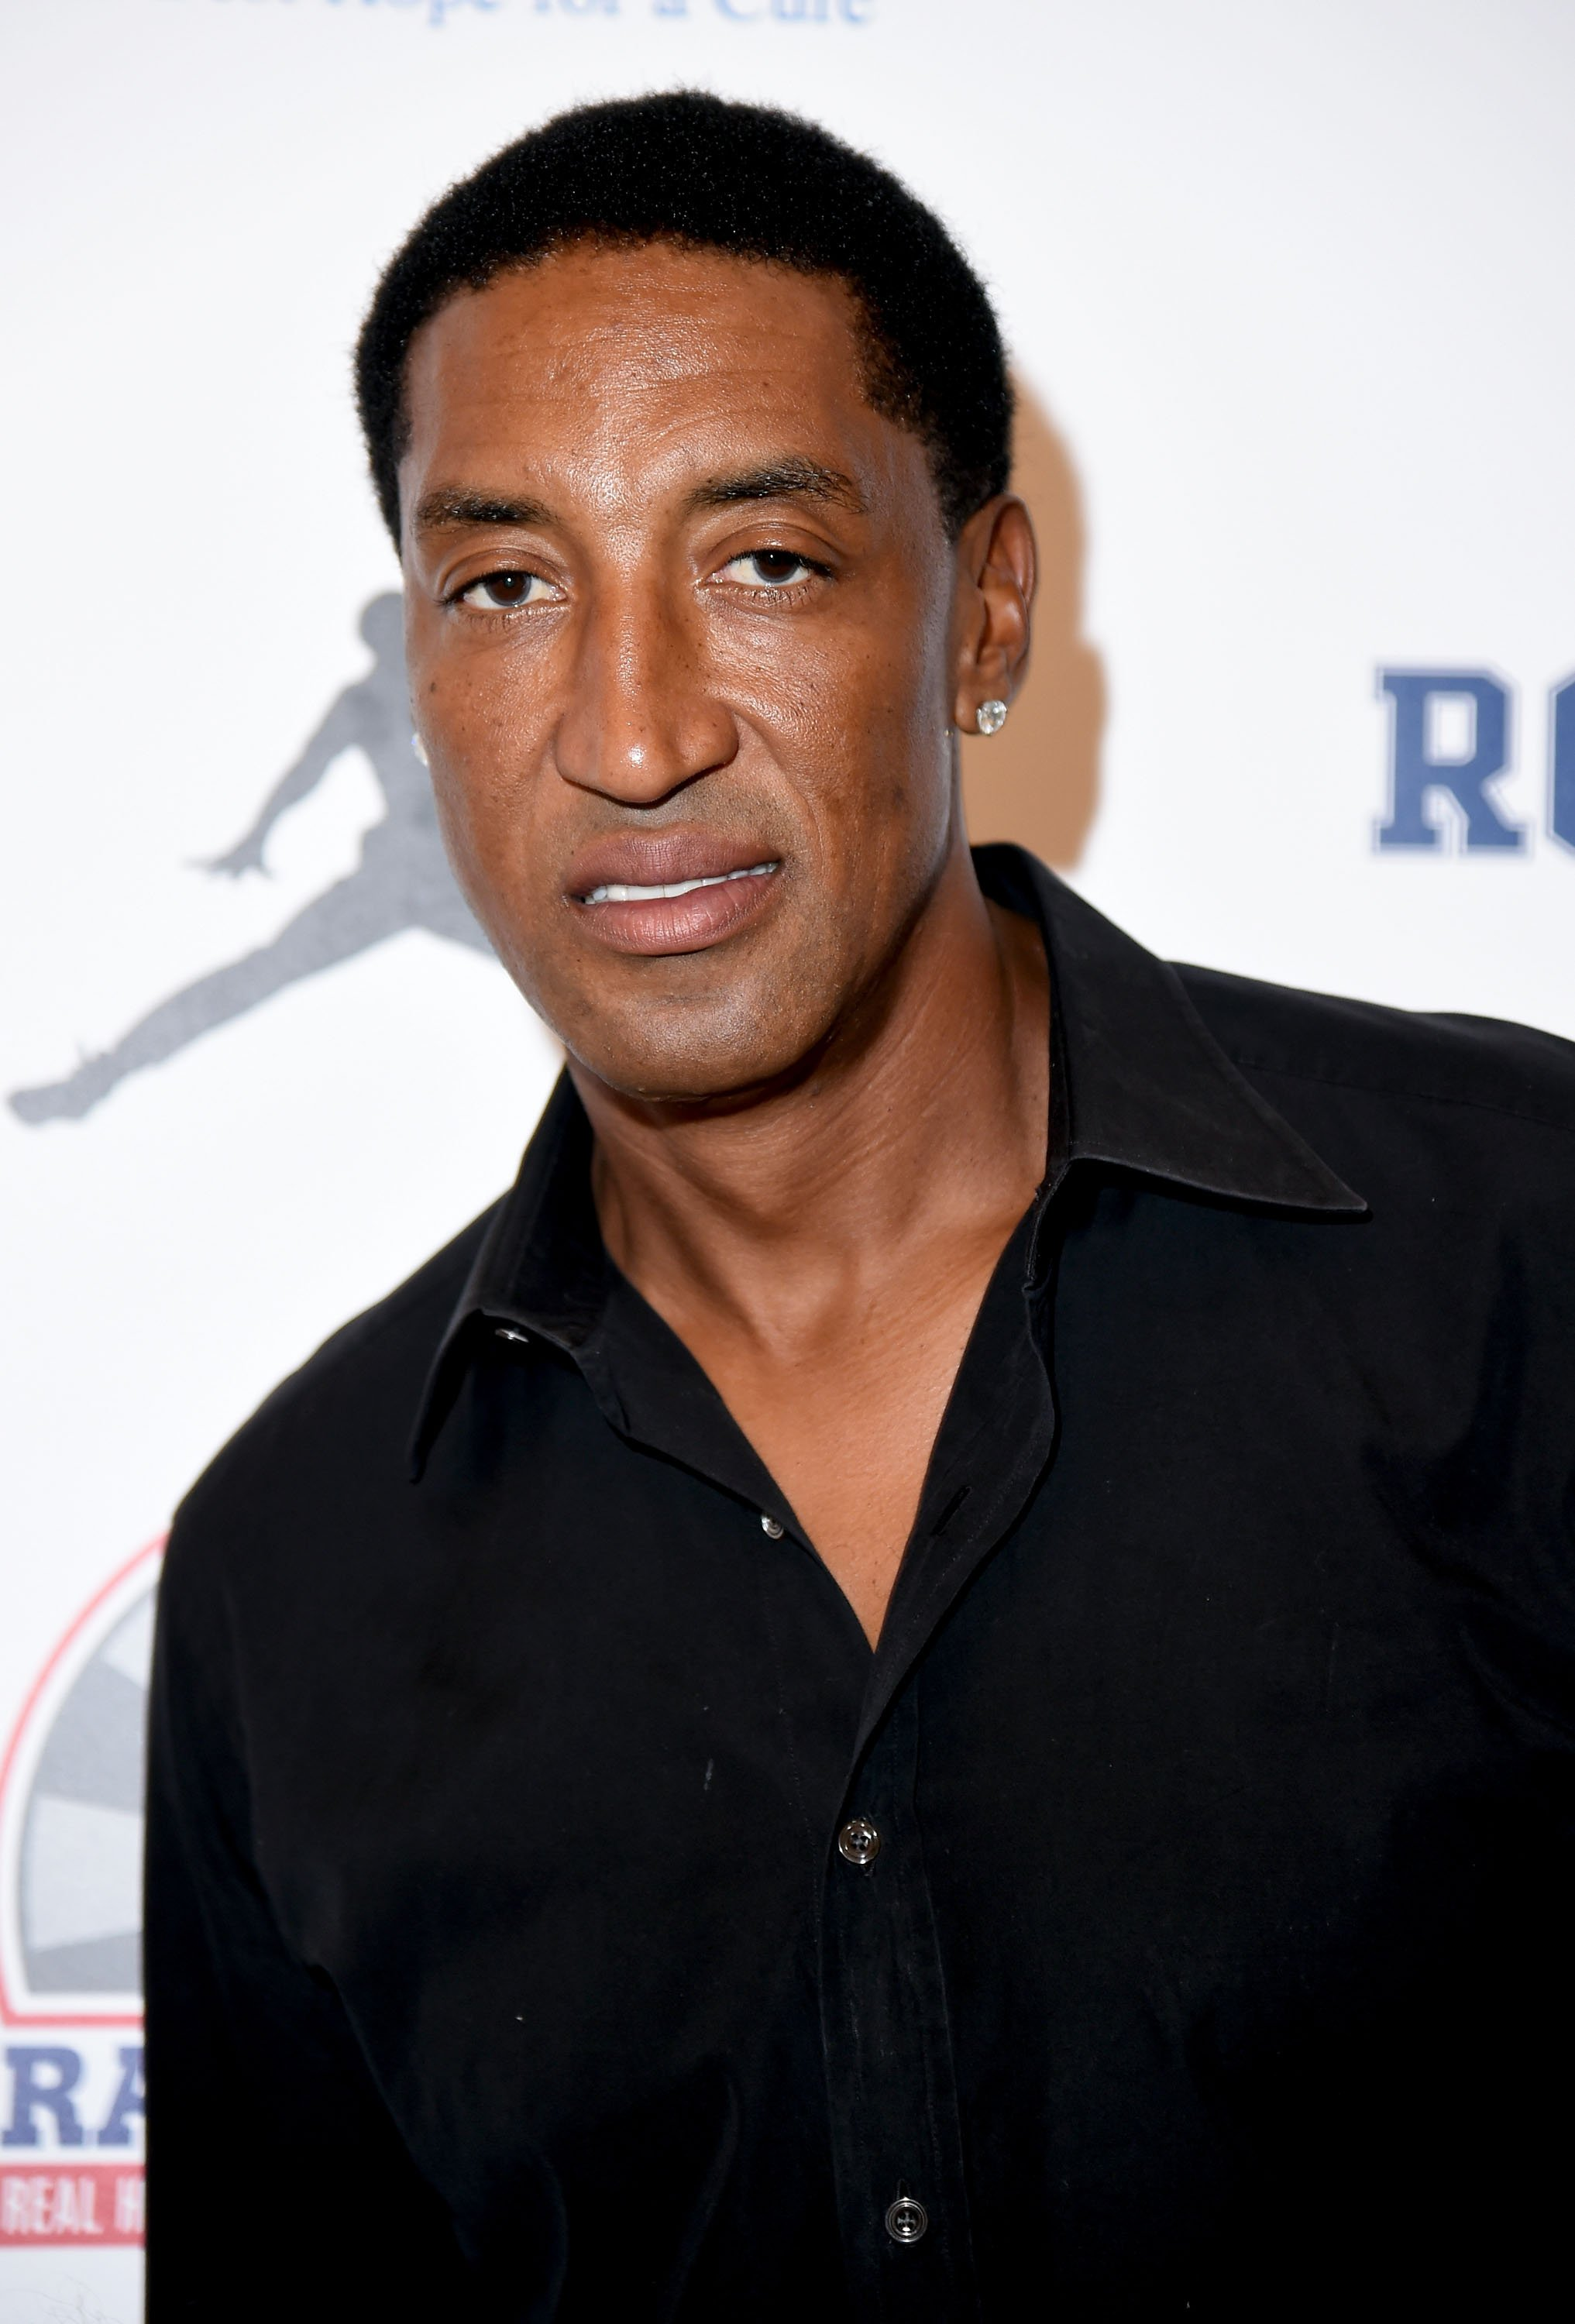 Image Credits: Getty Images / Michael Loccisano | Scottie Pippen attends Rookie USA Presents Kids Rock! during New York Fashion Week: The Shows September 2016 at The Dock, Skylight at Moynihan Station on September 8, 2016 in New York City.